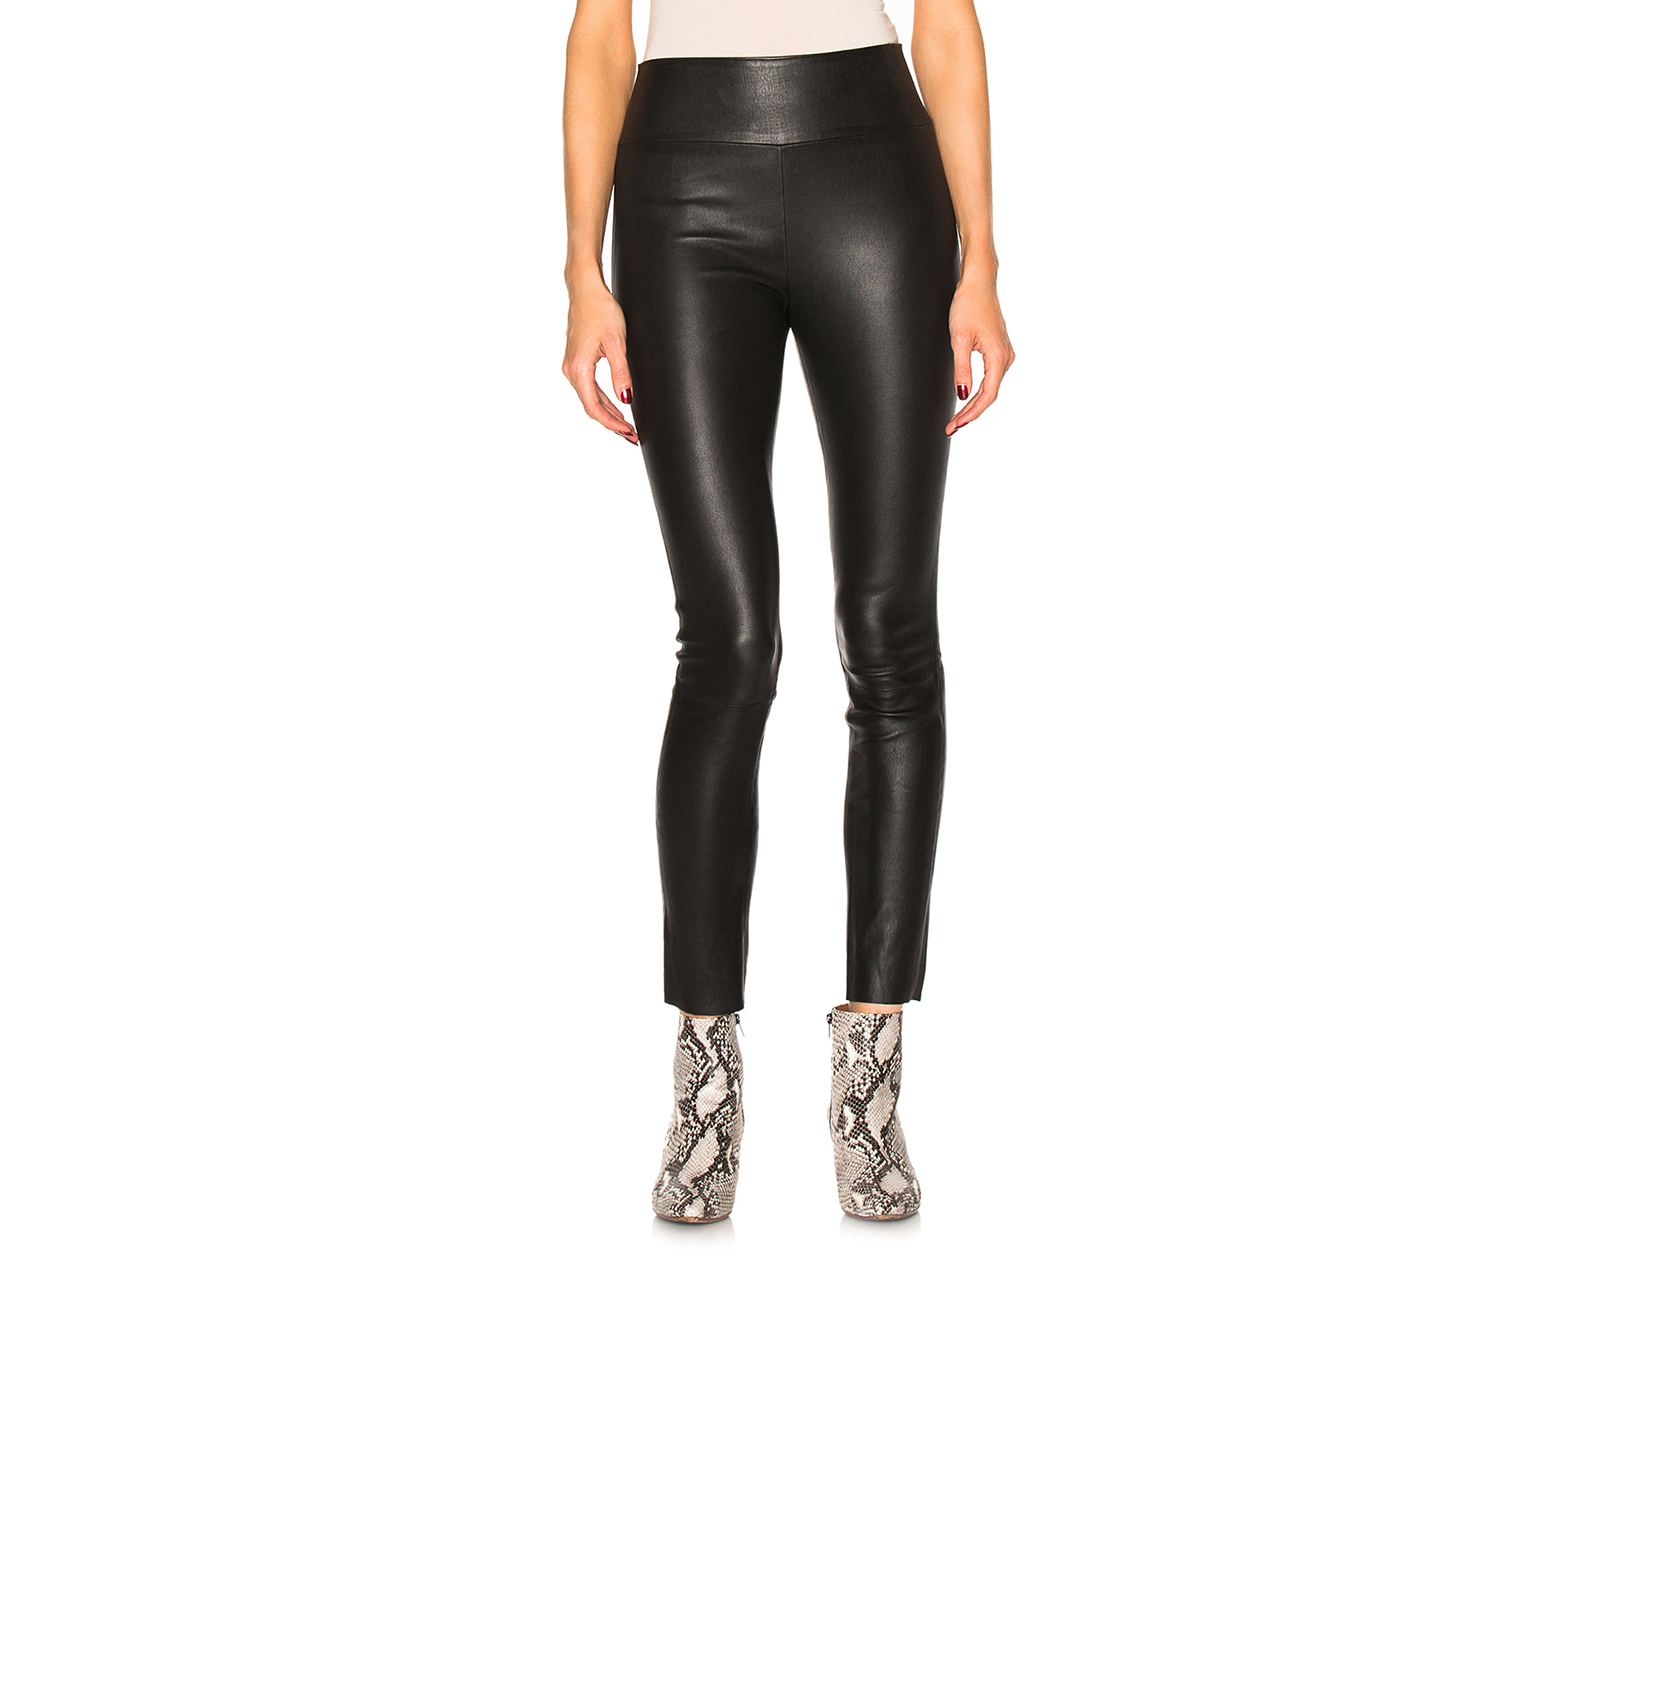 658b8c43eb998c The Ultimate Guide to Wearing Leather Leggings   Real Simple